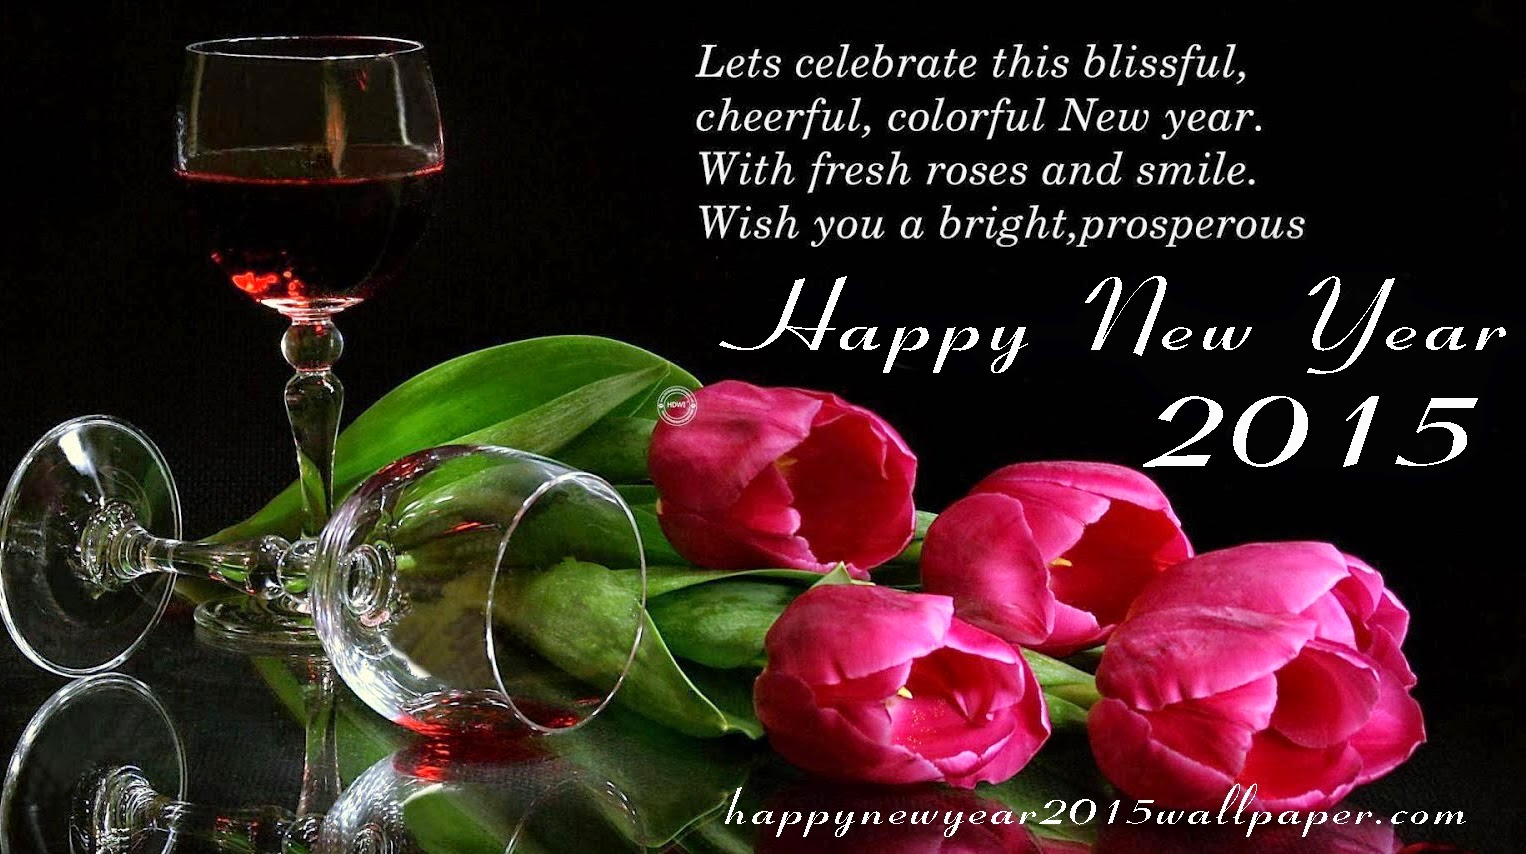 Happy New Year 2015 3d Image Wall Pics Telugu Hindi English Sms